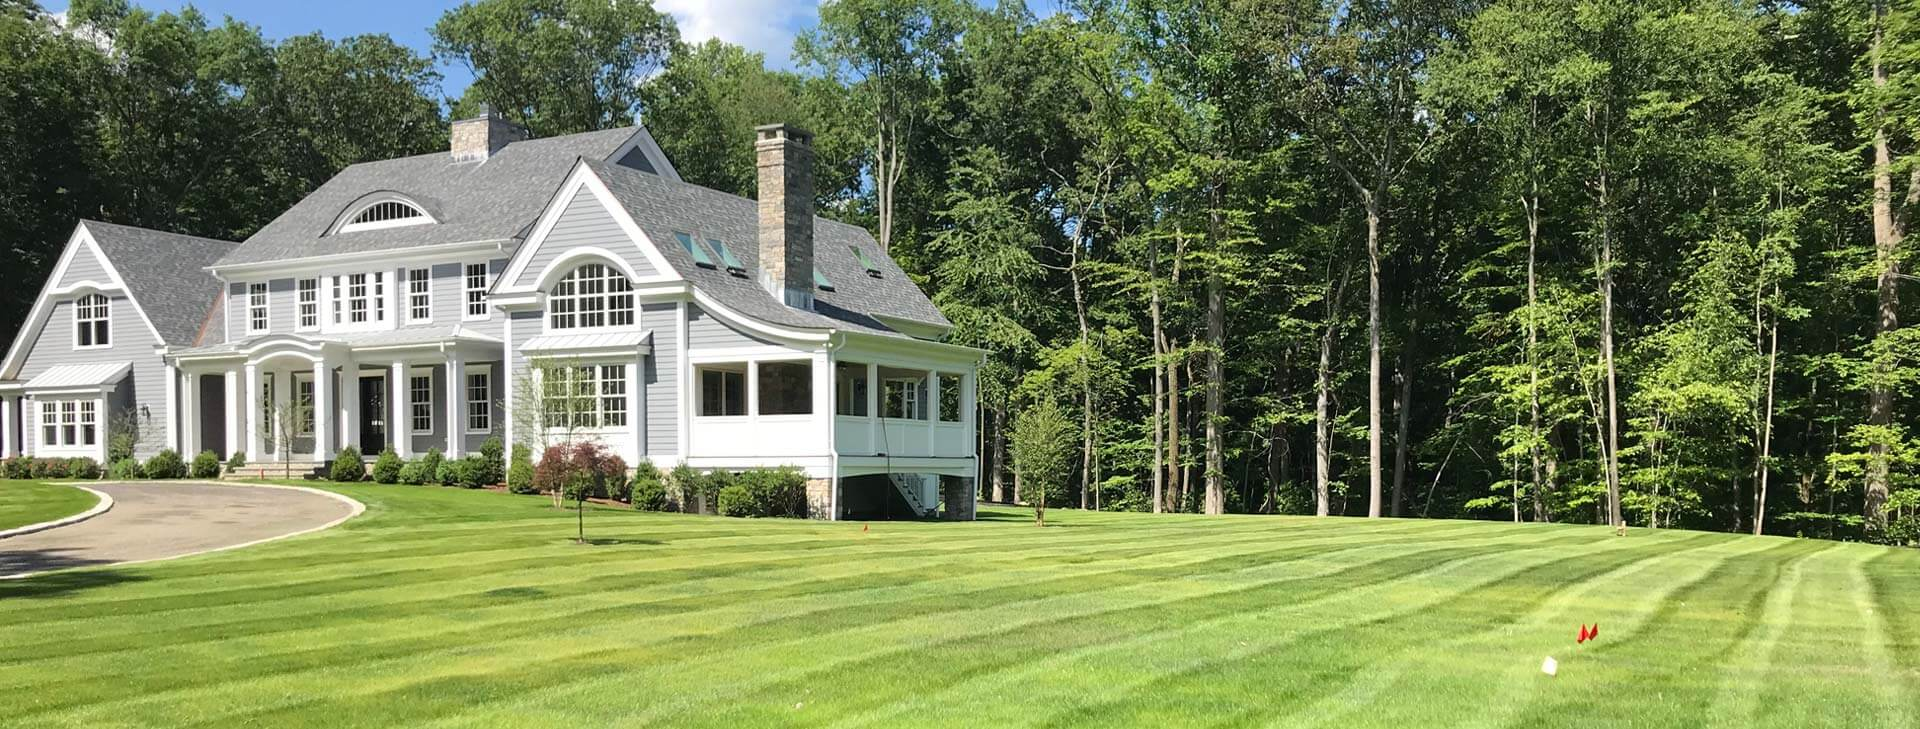 luxurious lawns